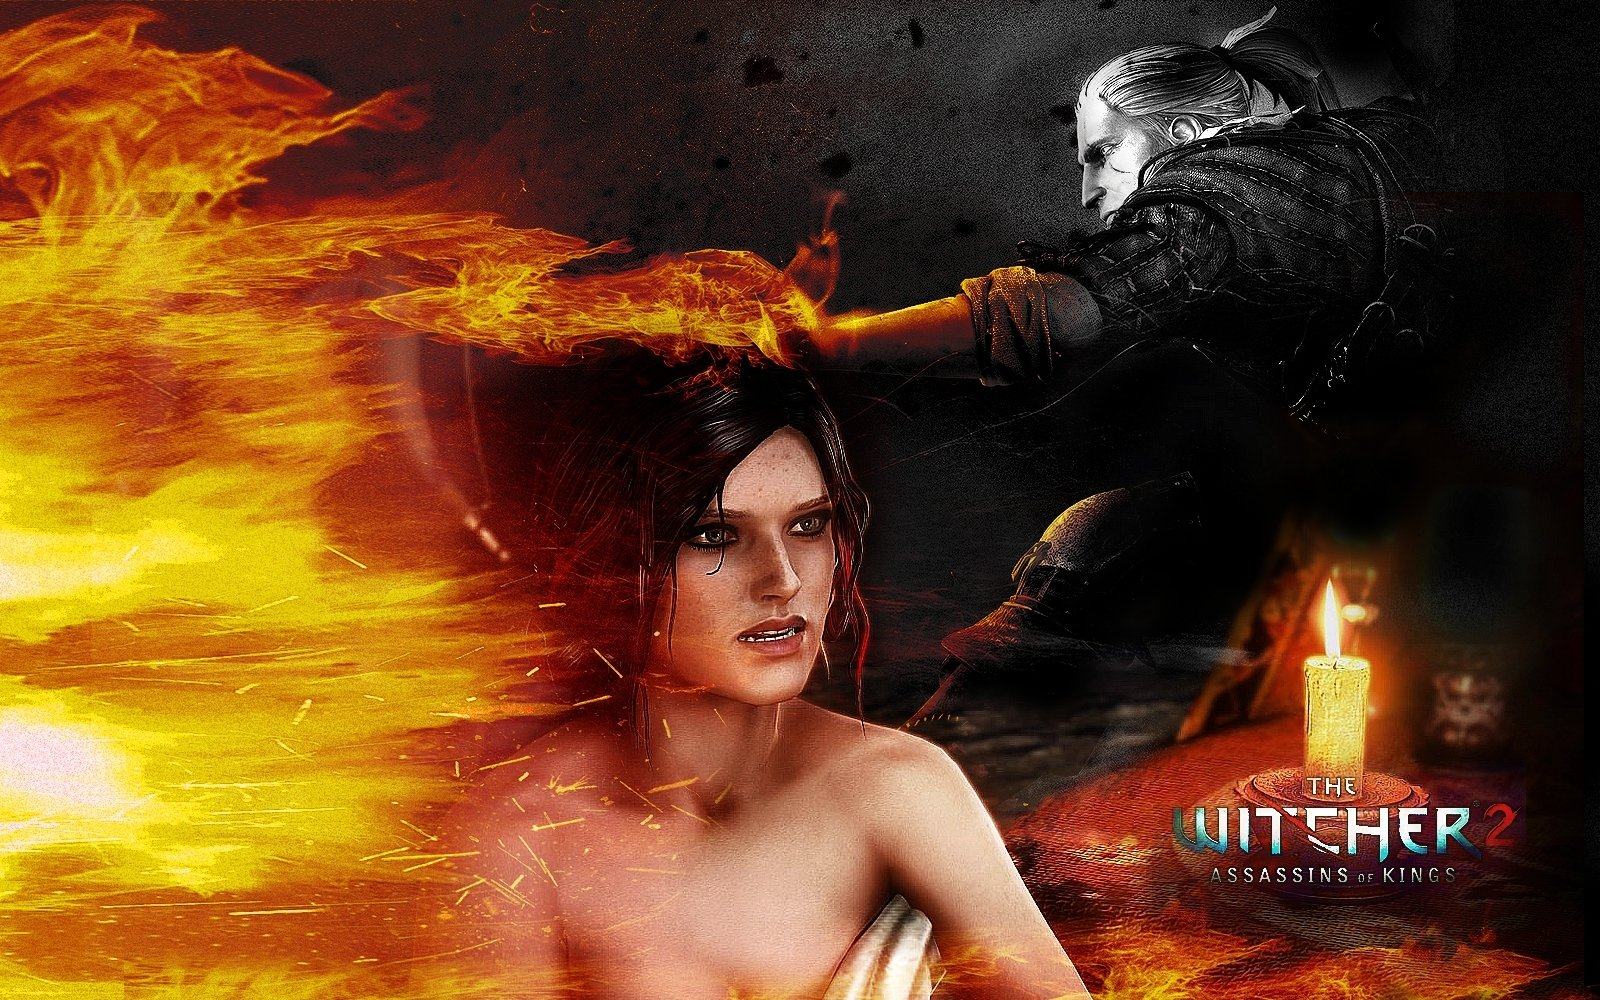 Video Game - The Witcher 2: Assassins Of Kings  The Witcher Triss Merigold Wallpaper